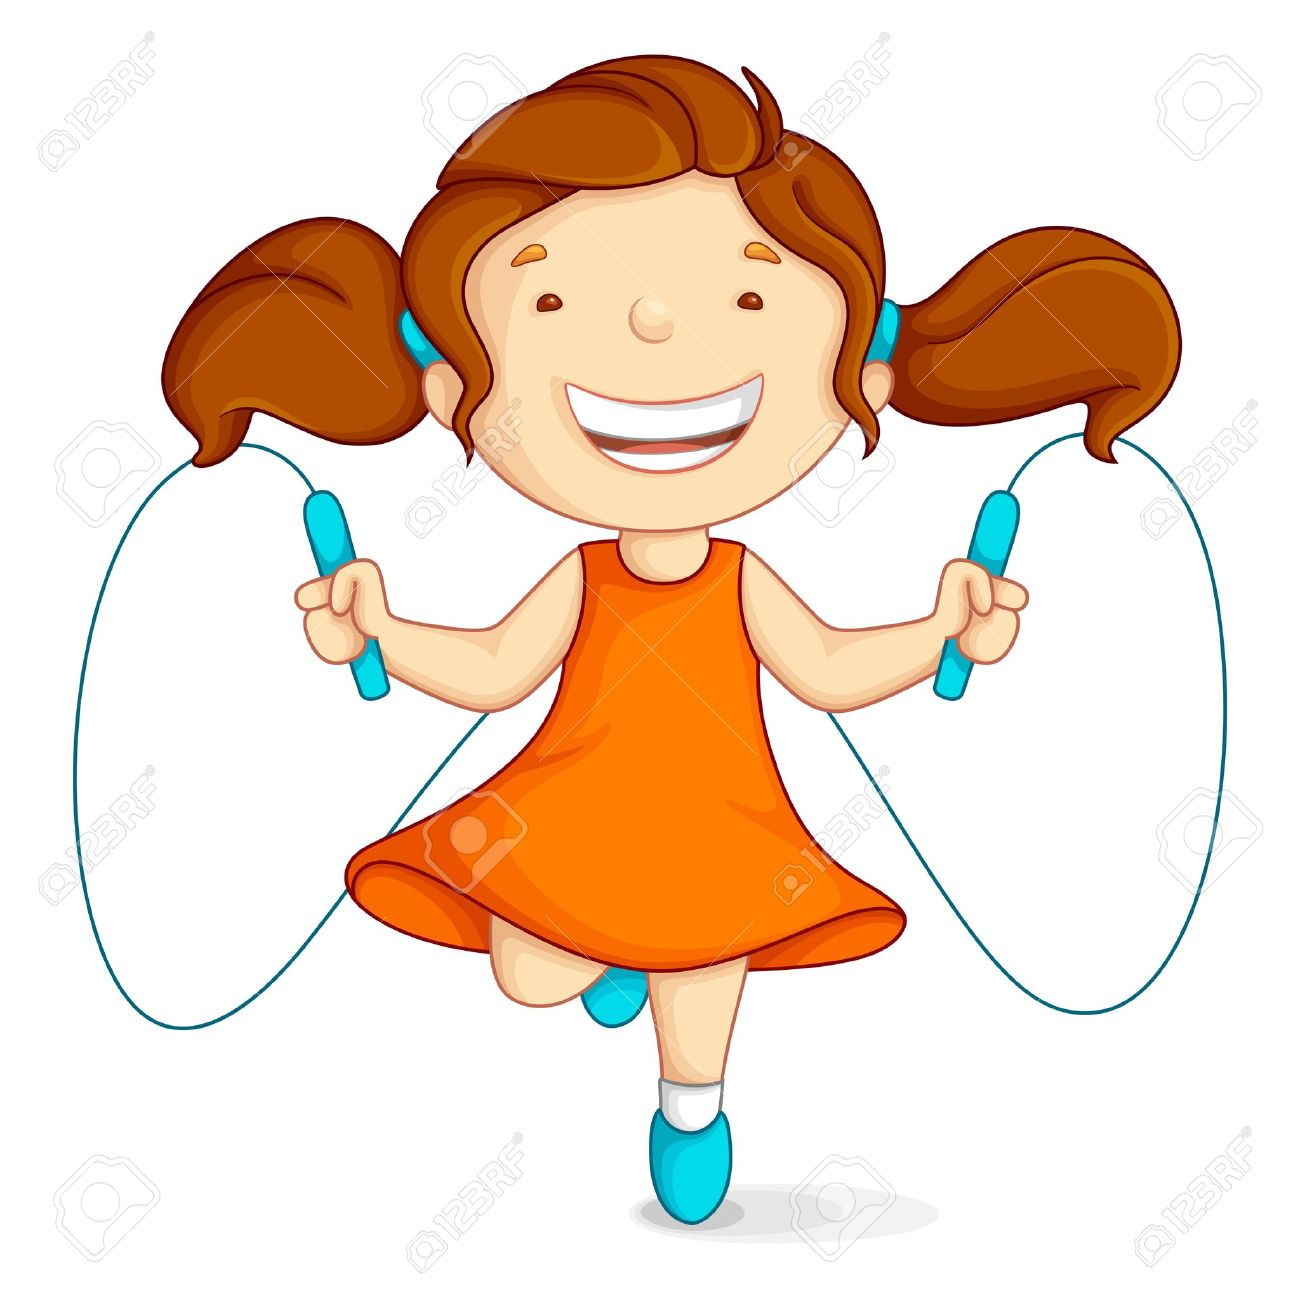 Rope skipping clipart.